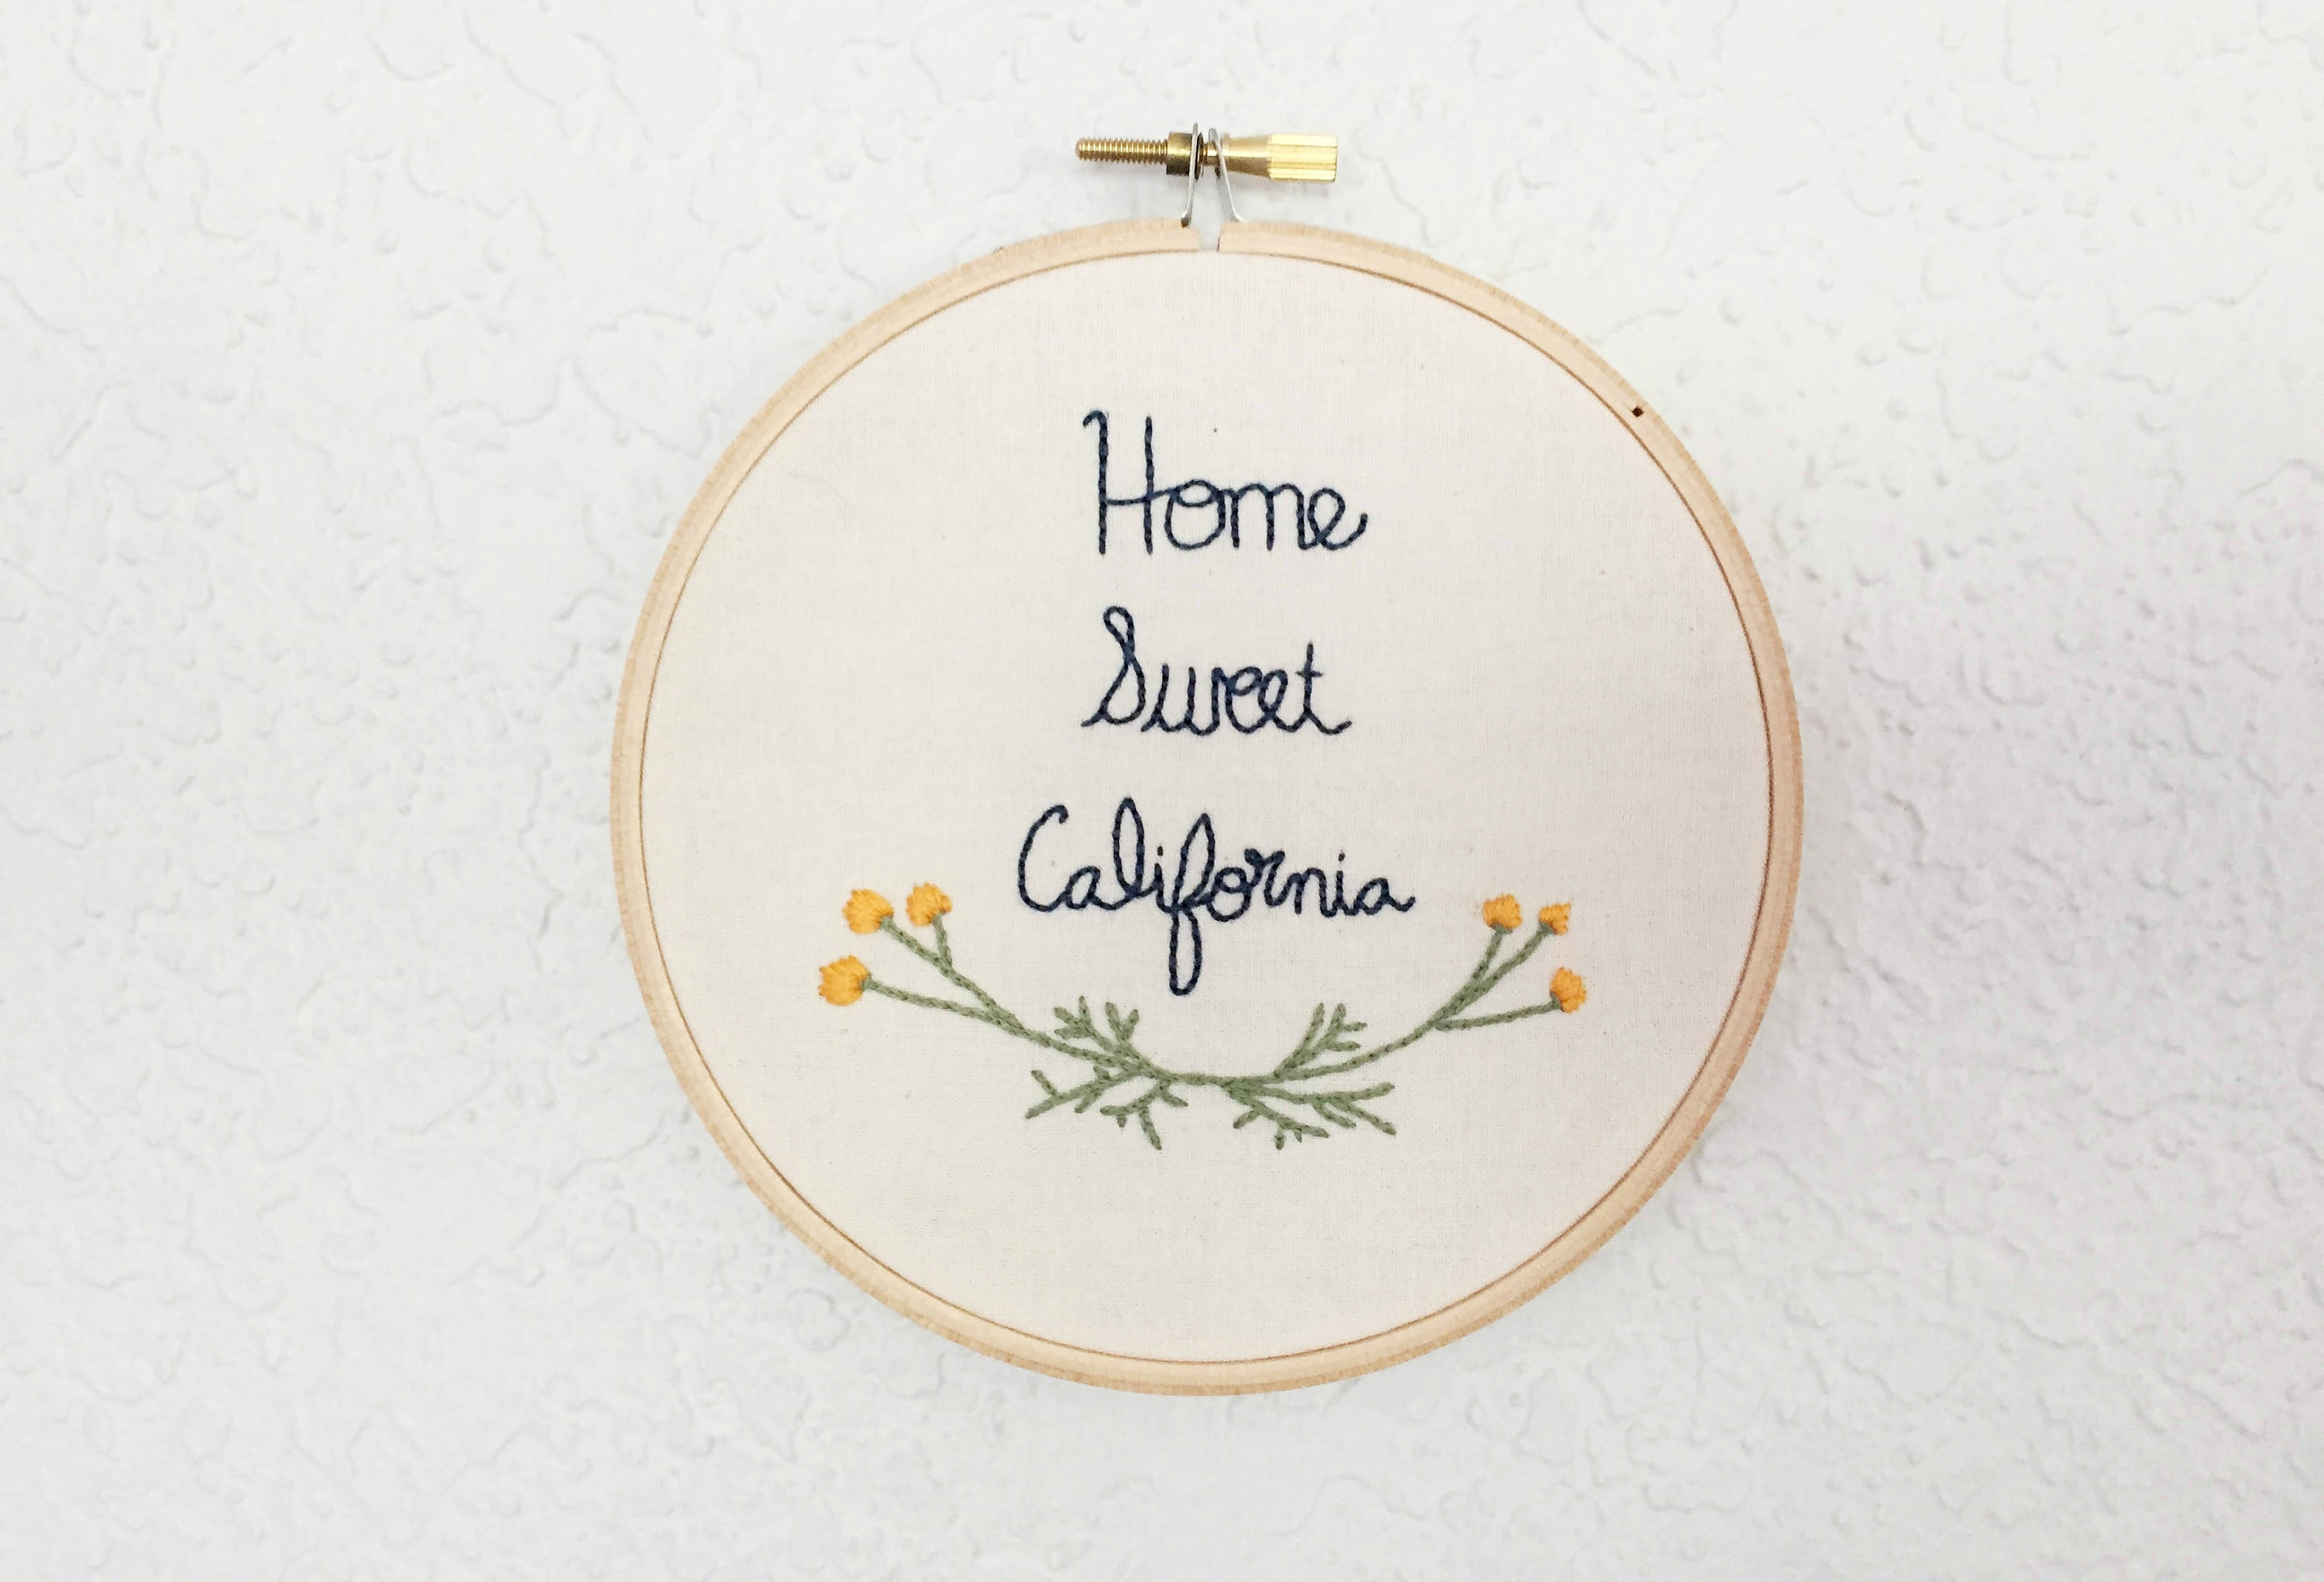 The Best Housewarming Gift Ideas For A First Home